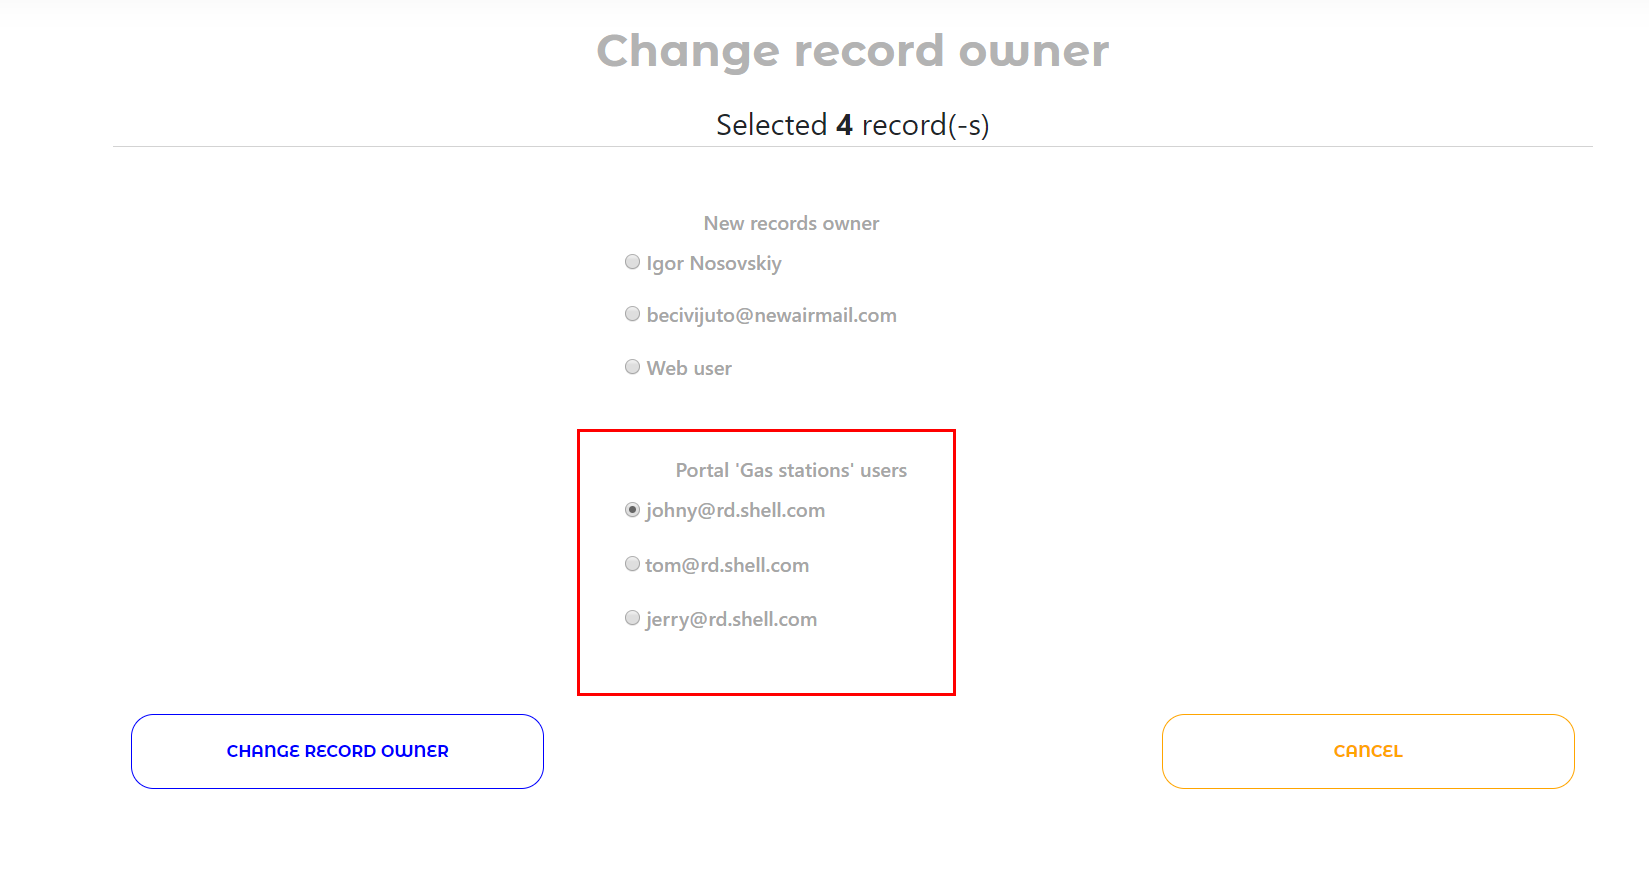 Change record owner